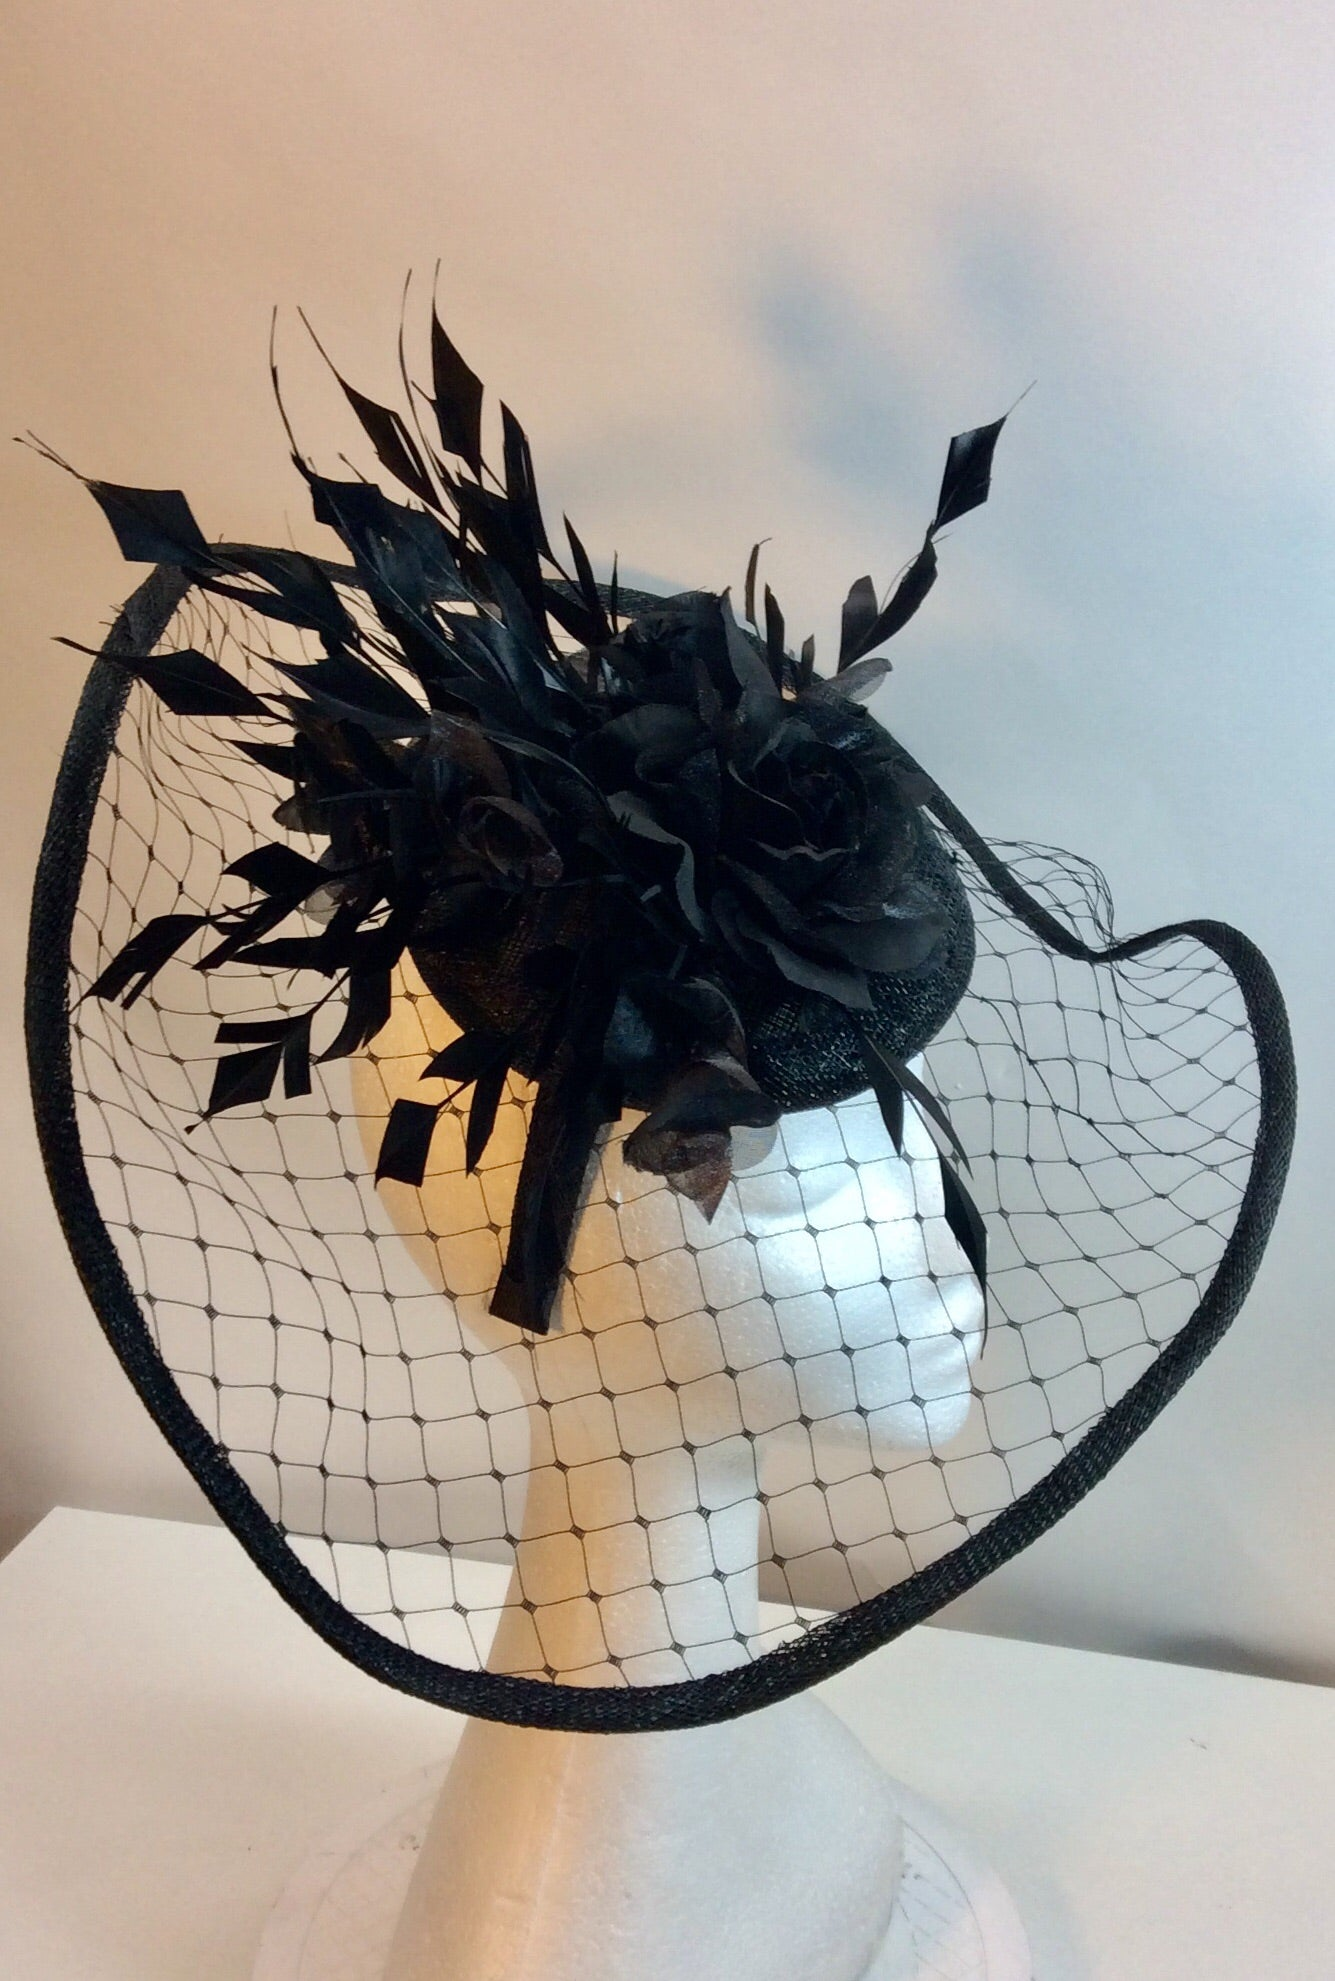 Fabulous black hat style fascinator with netting flower and feathers